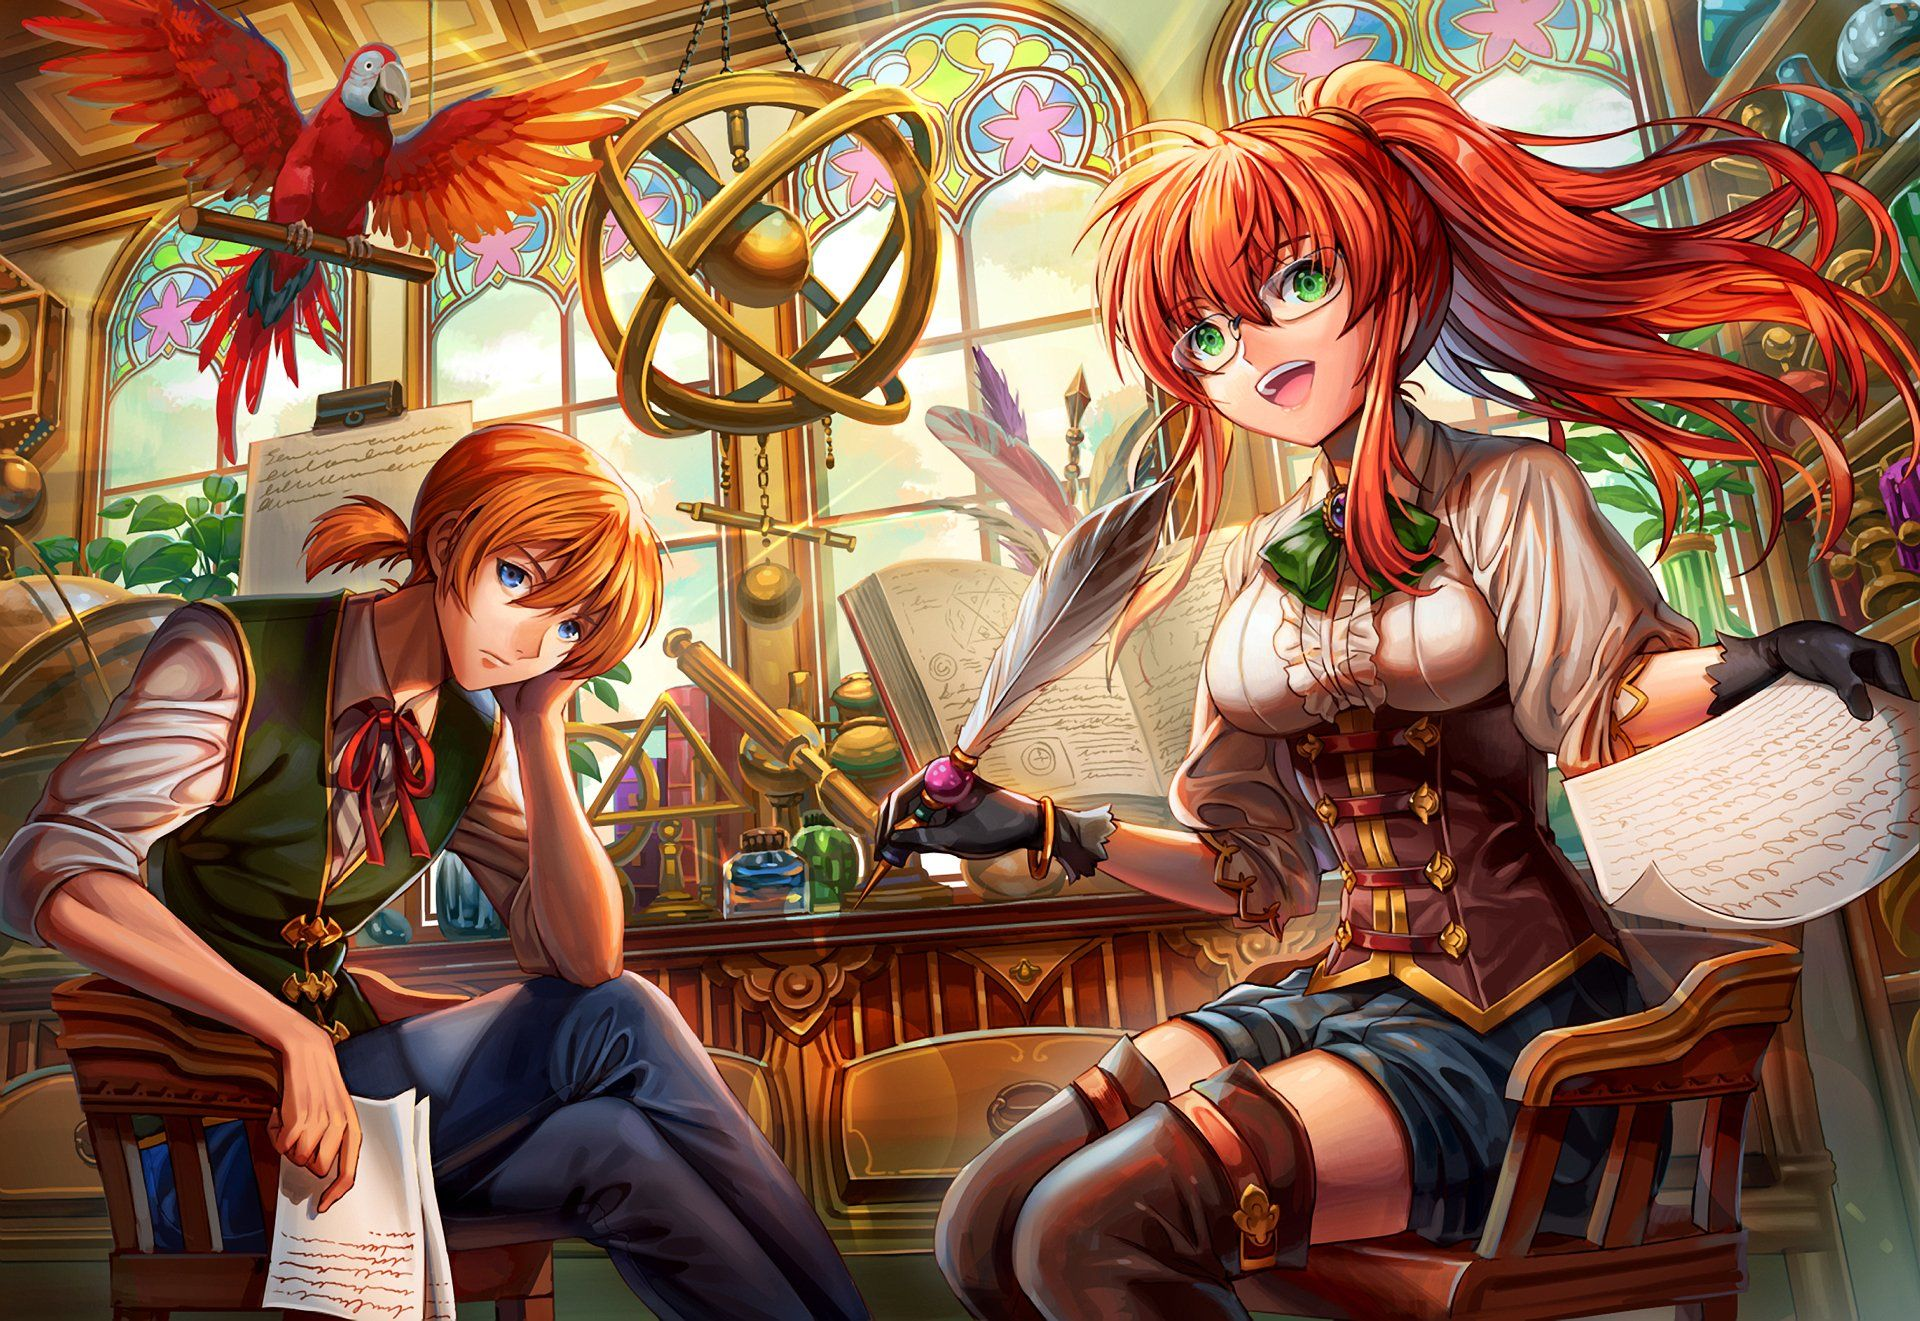 Anime original girl boy blue eyes orange hair red hair green eyes wallpaper